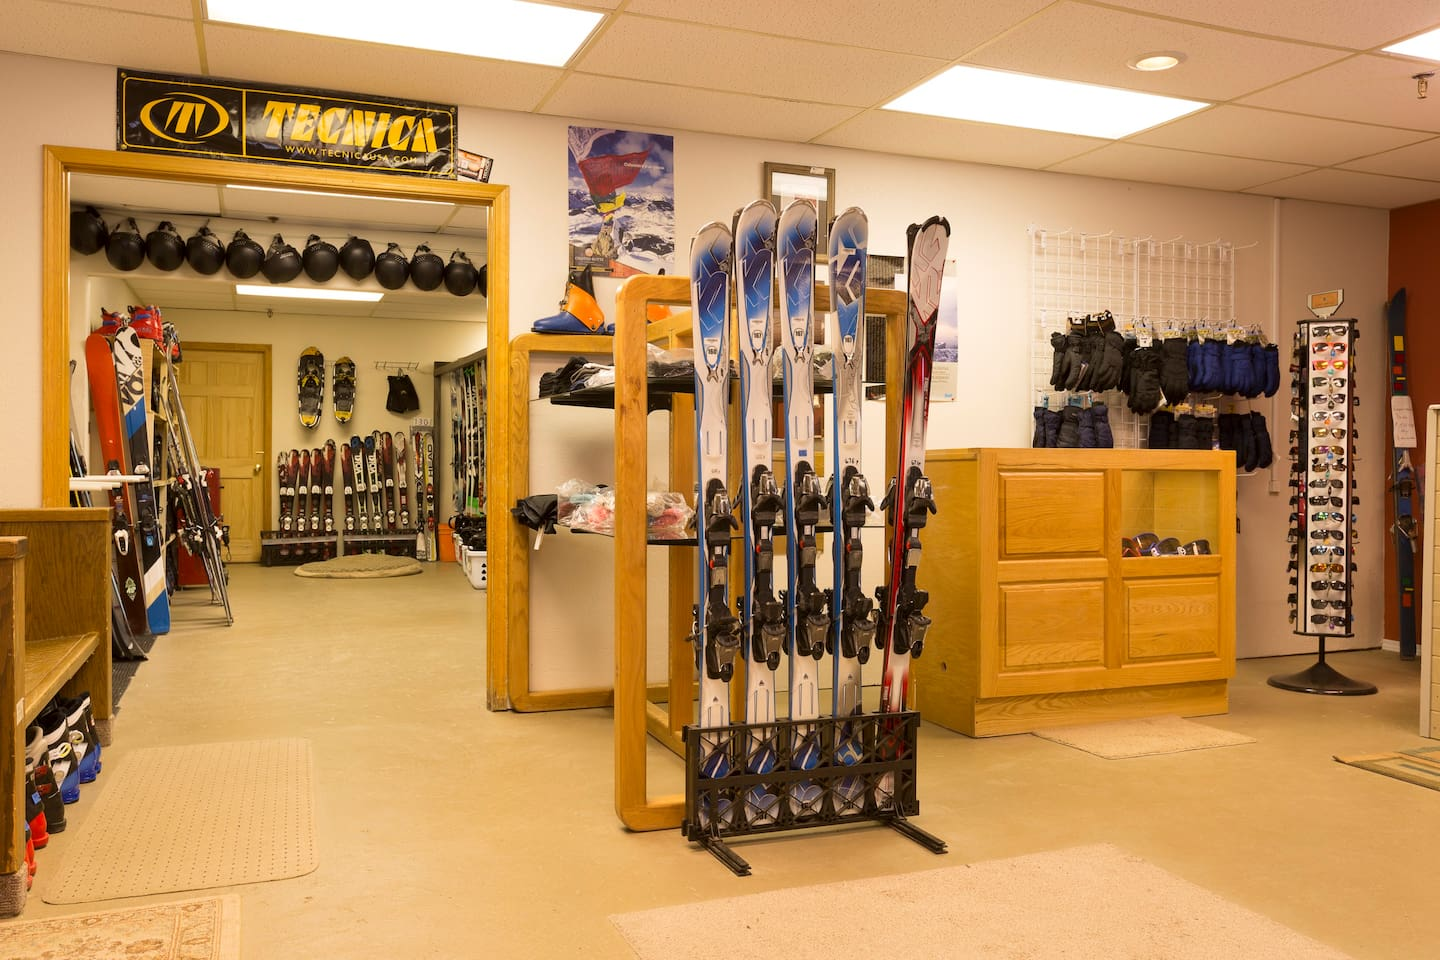 Our community's ski, snowshoe, snowboard, rental shop. Awesome owner and customer service!